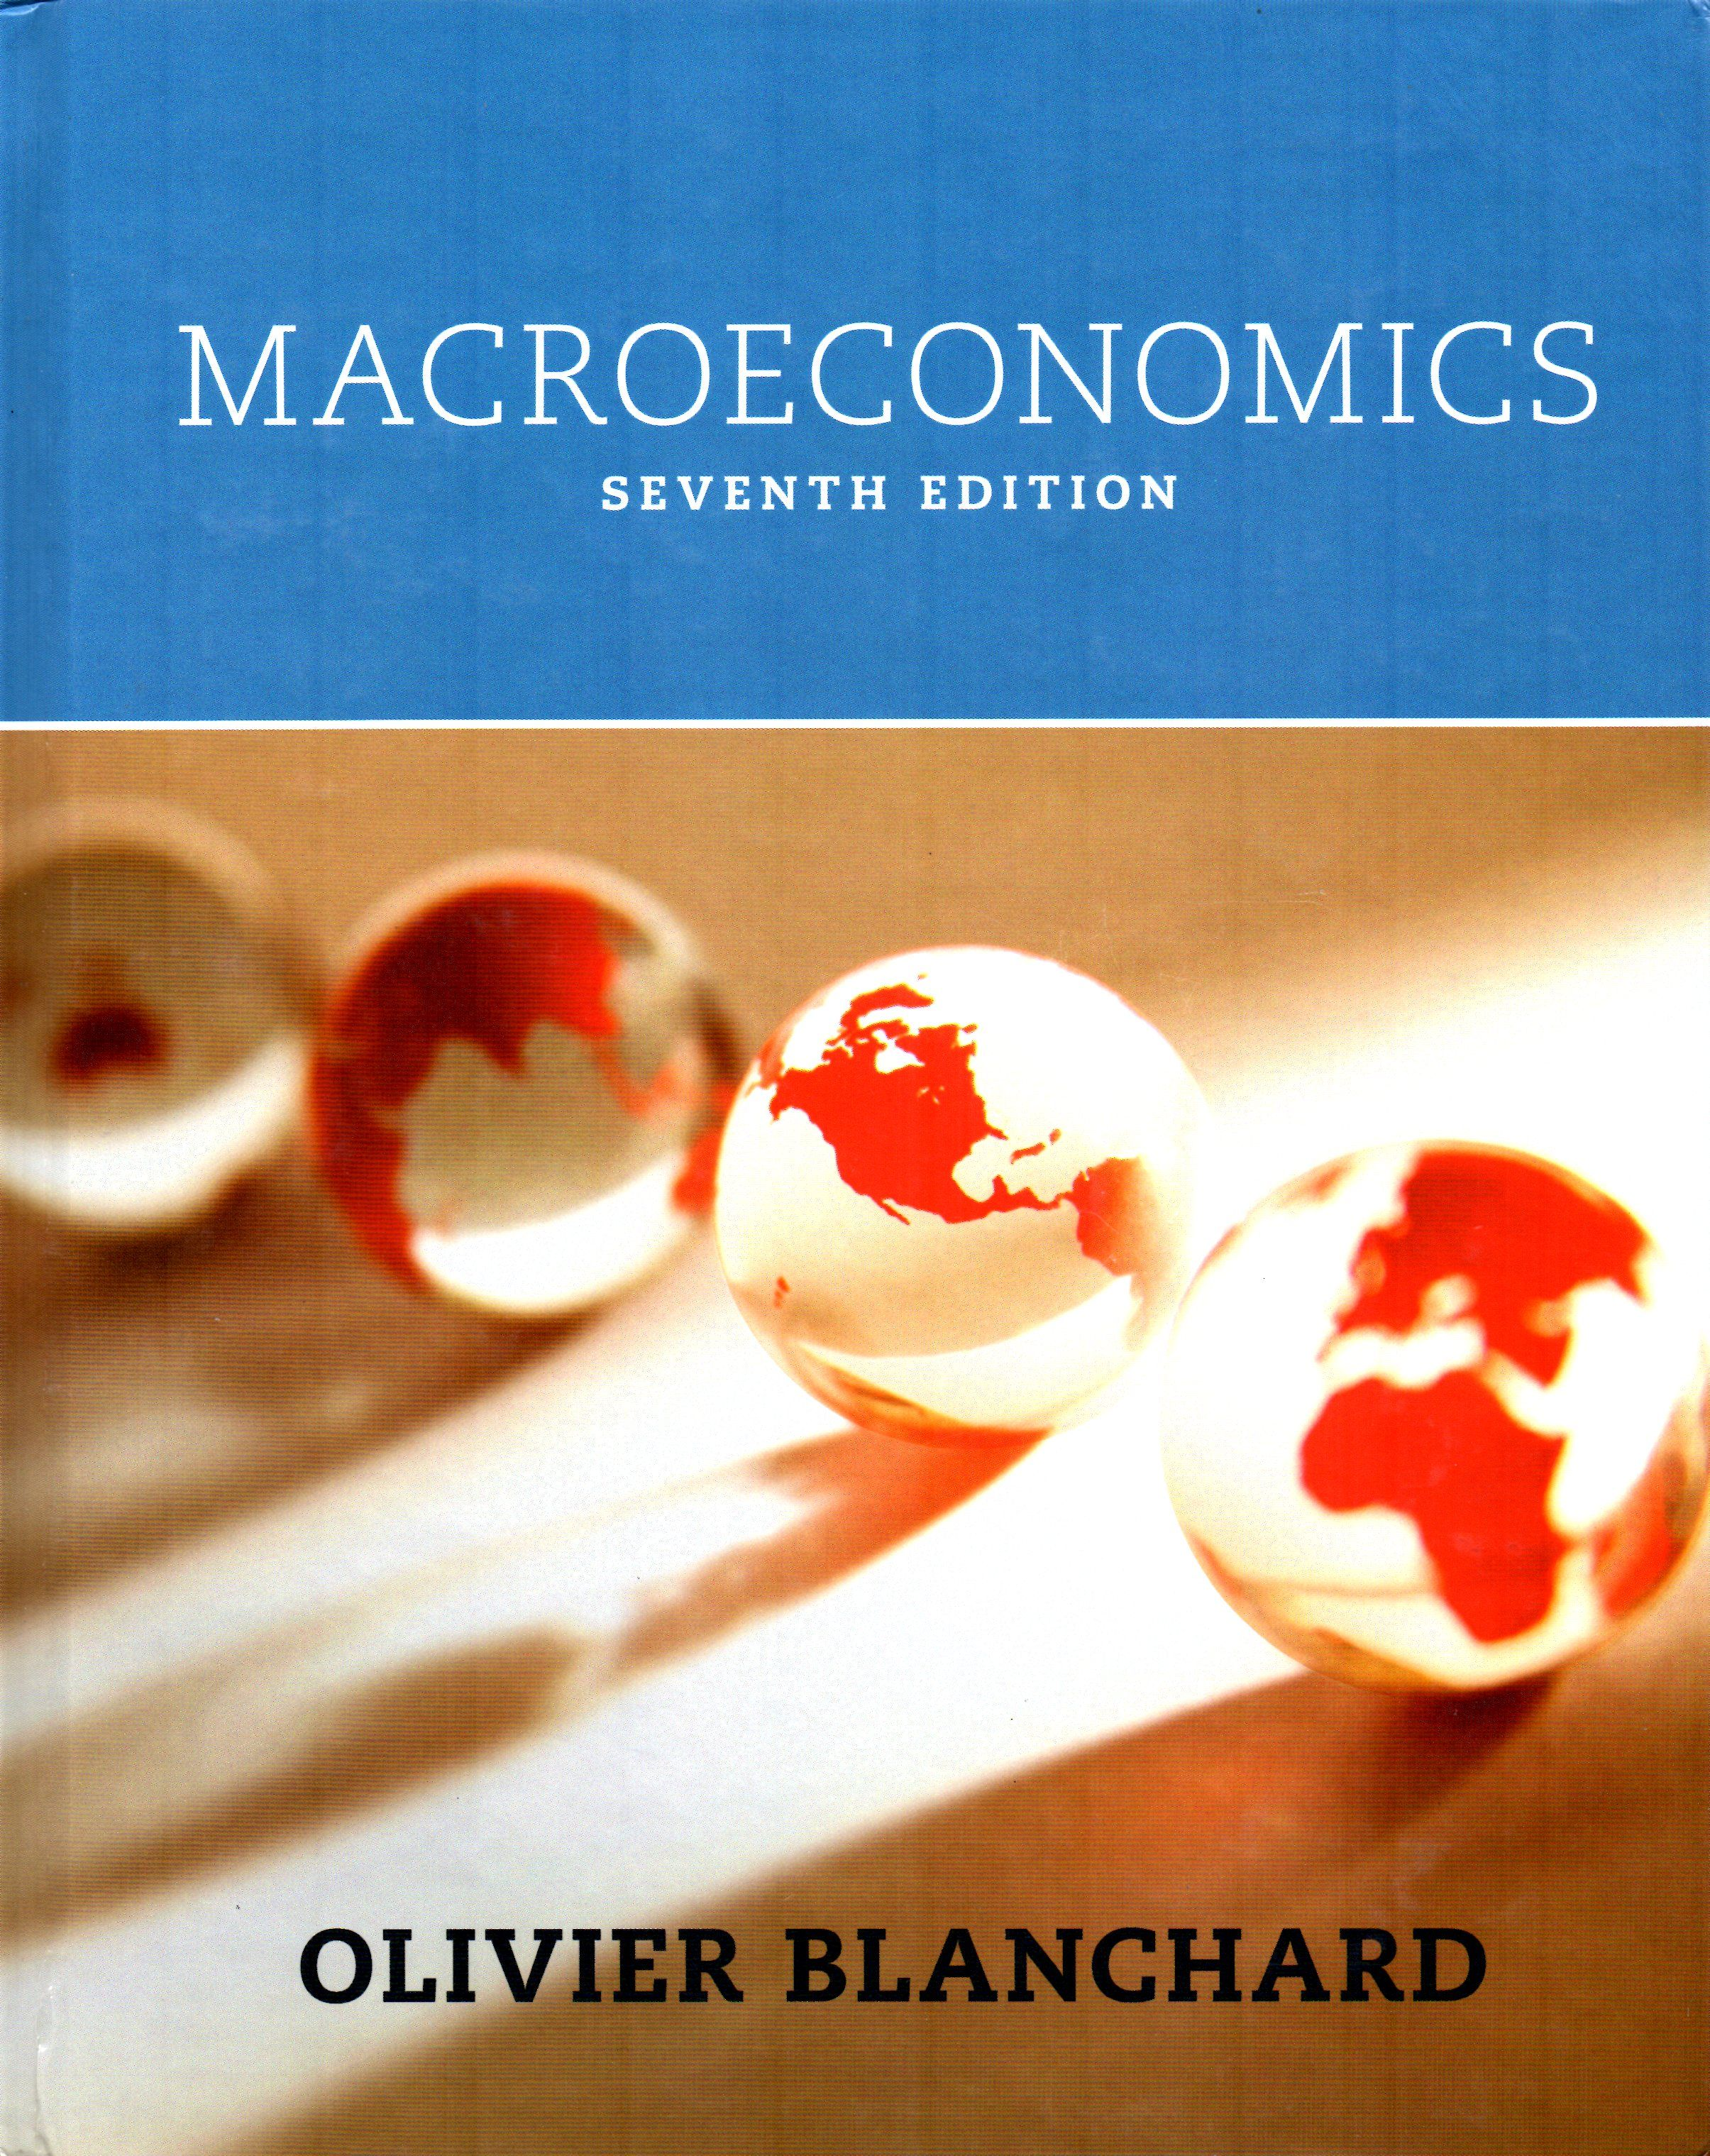 Macroeconomics olivier blanchard pearson 2017 hb 1725 macroeconomics by olivier blanchard hardcover book english fandeluxe Choice Image